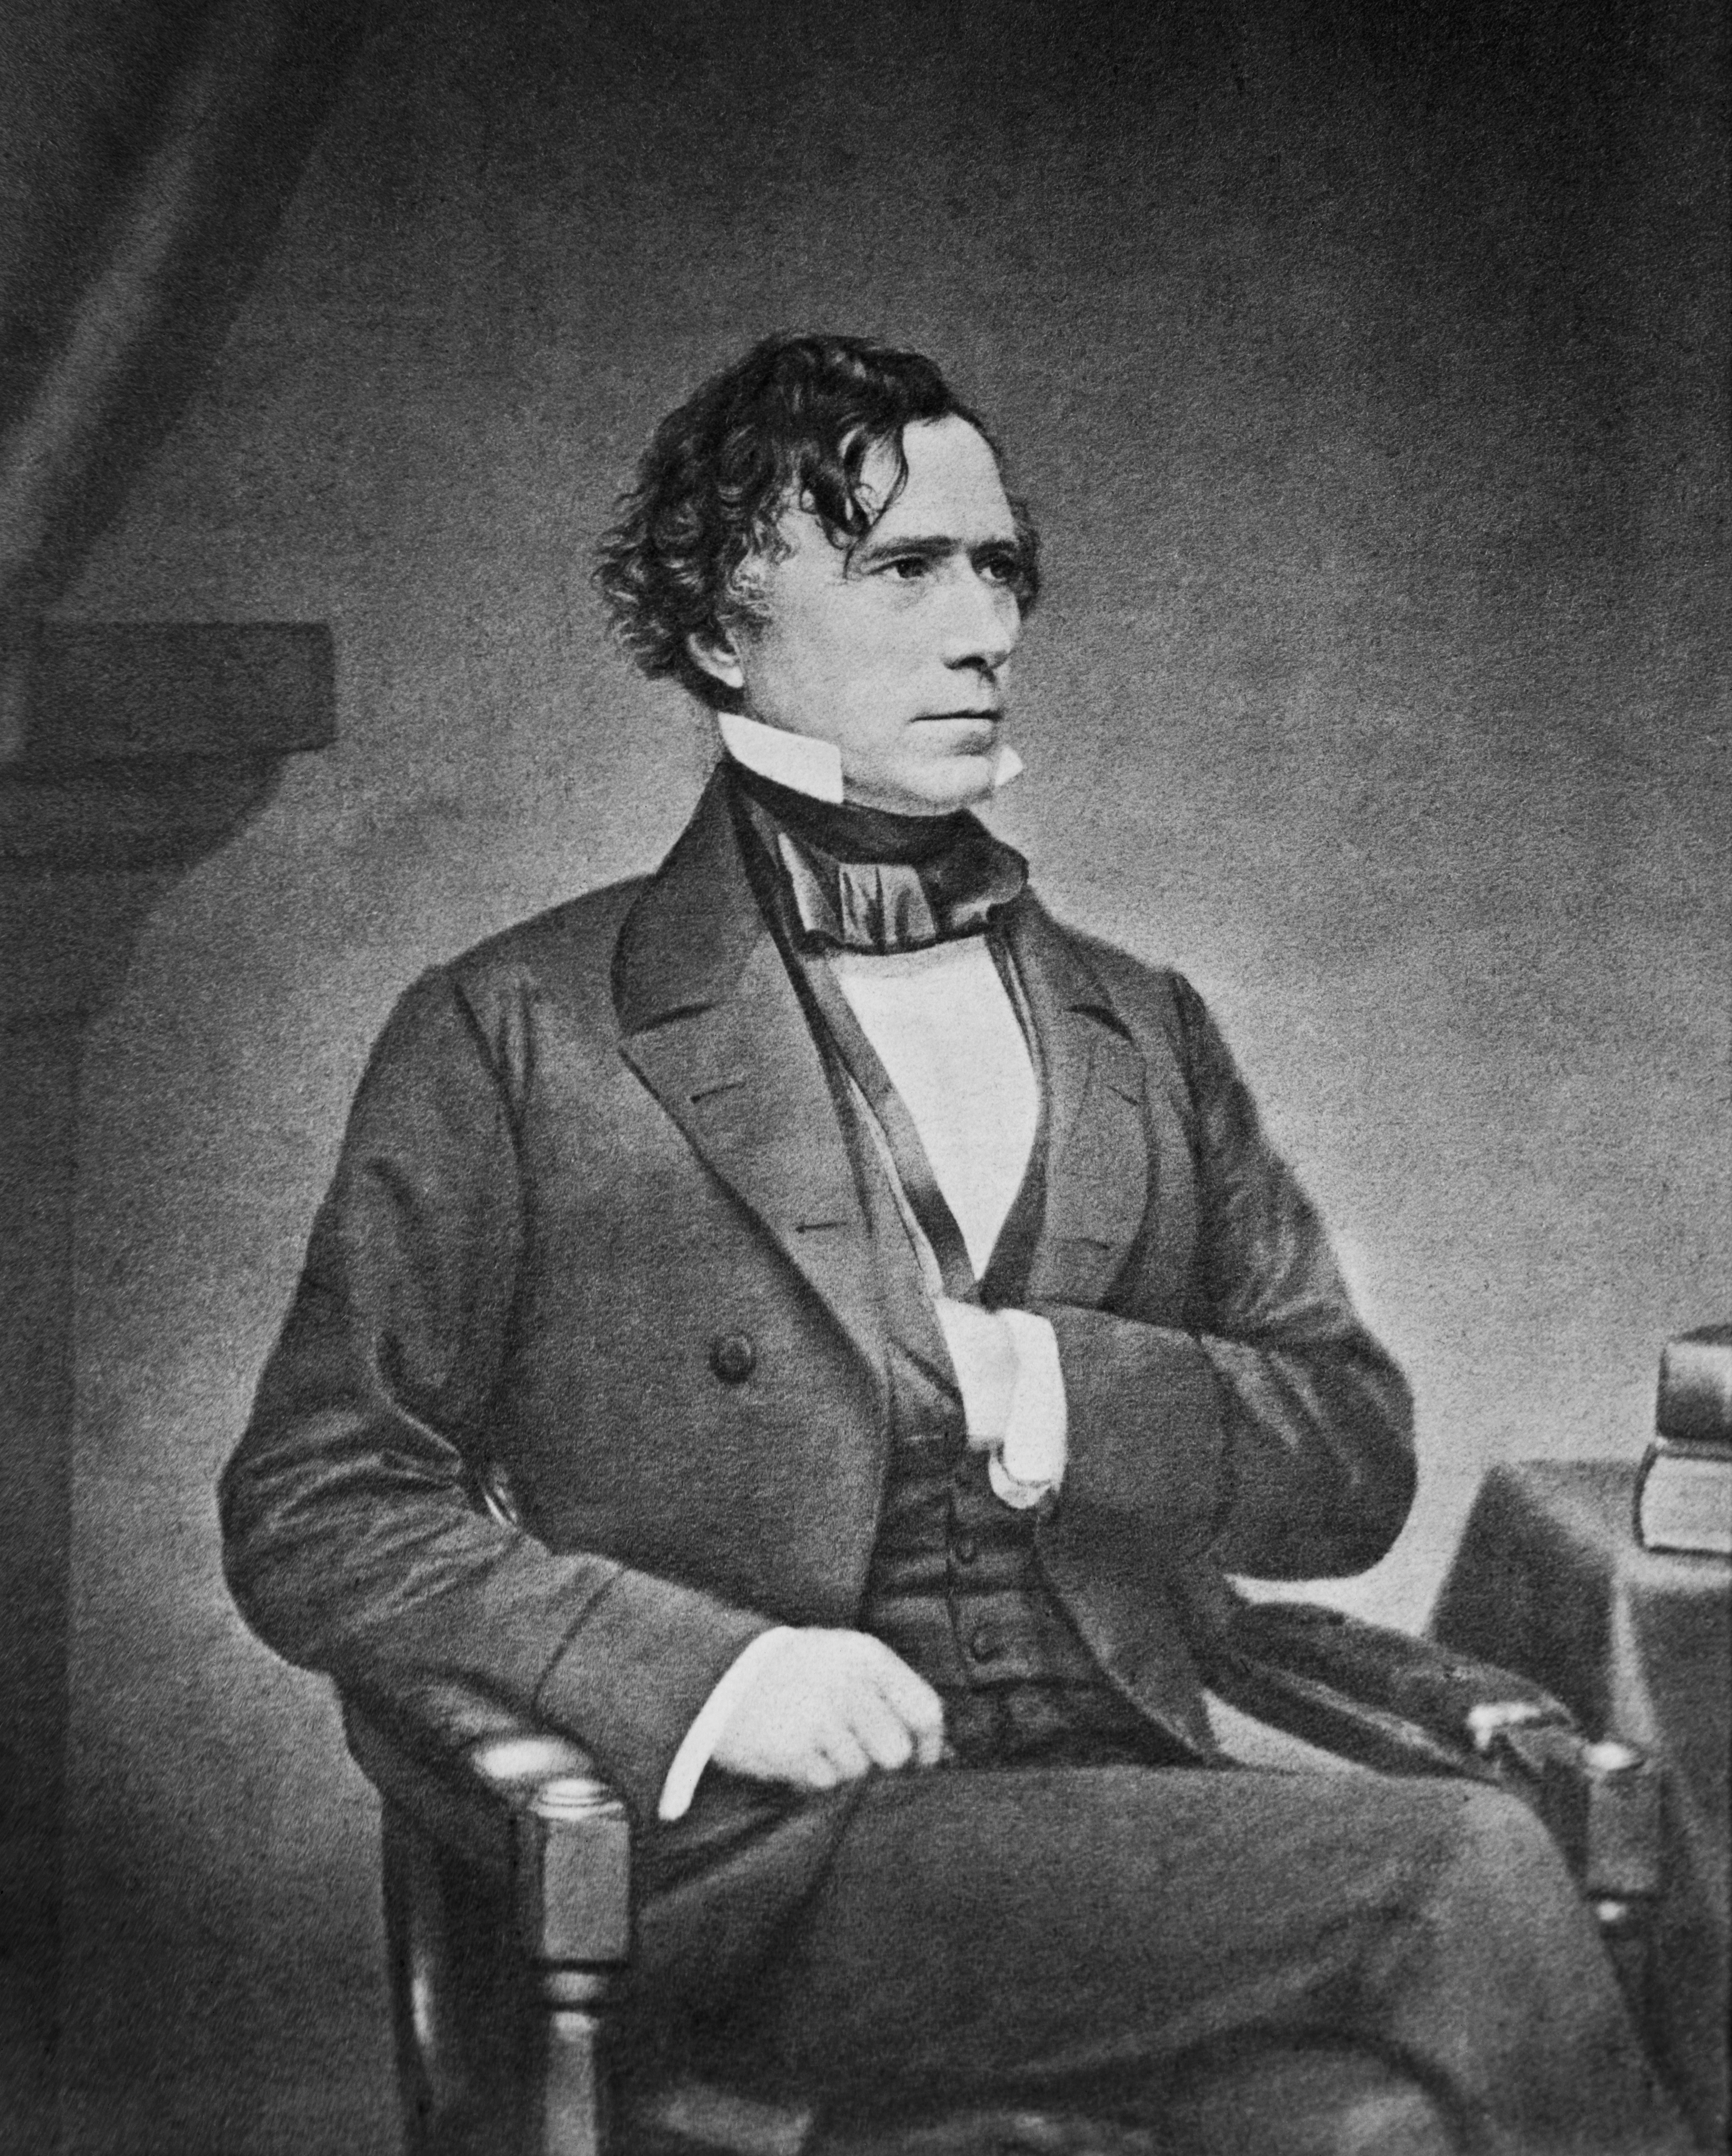 Portrait of Franklin Pierce (1804–1869) by Mathew Brady, taken between 1855 and 1865. The Library of Congress describes this as